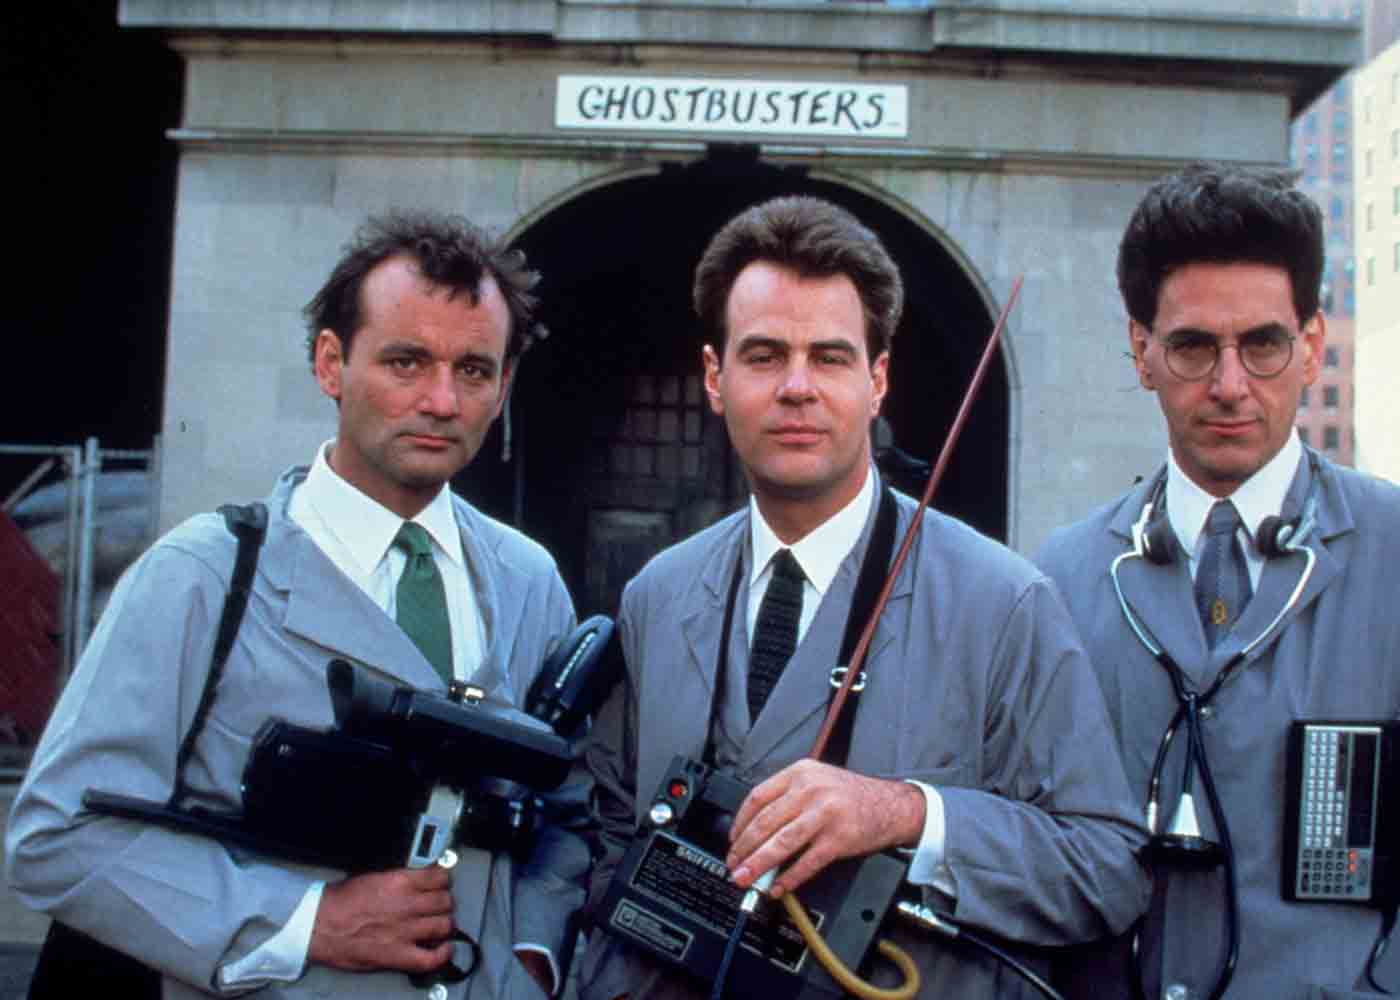 Dan Aykroyd: Ghostbusters 3 in the Works with Hopes to Bring Back Original Cast